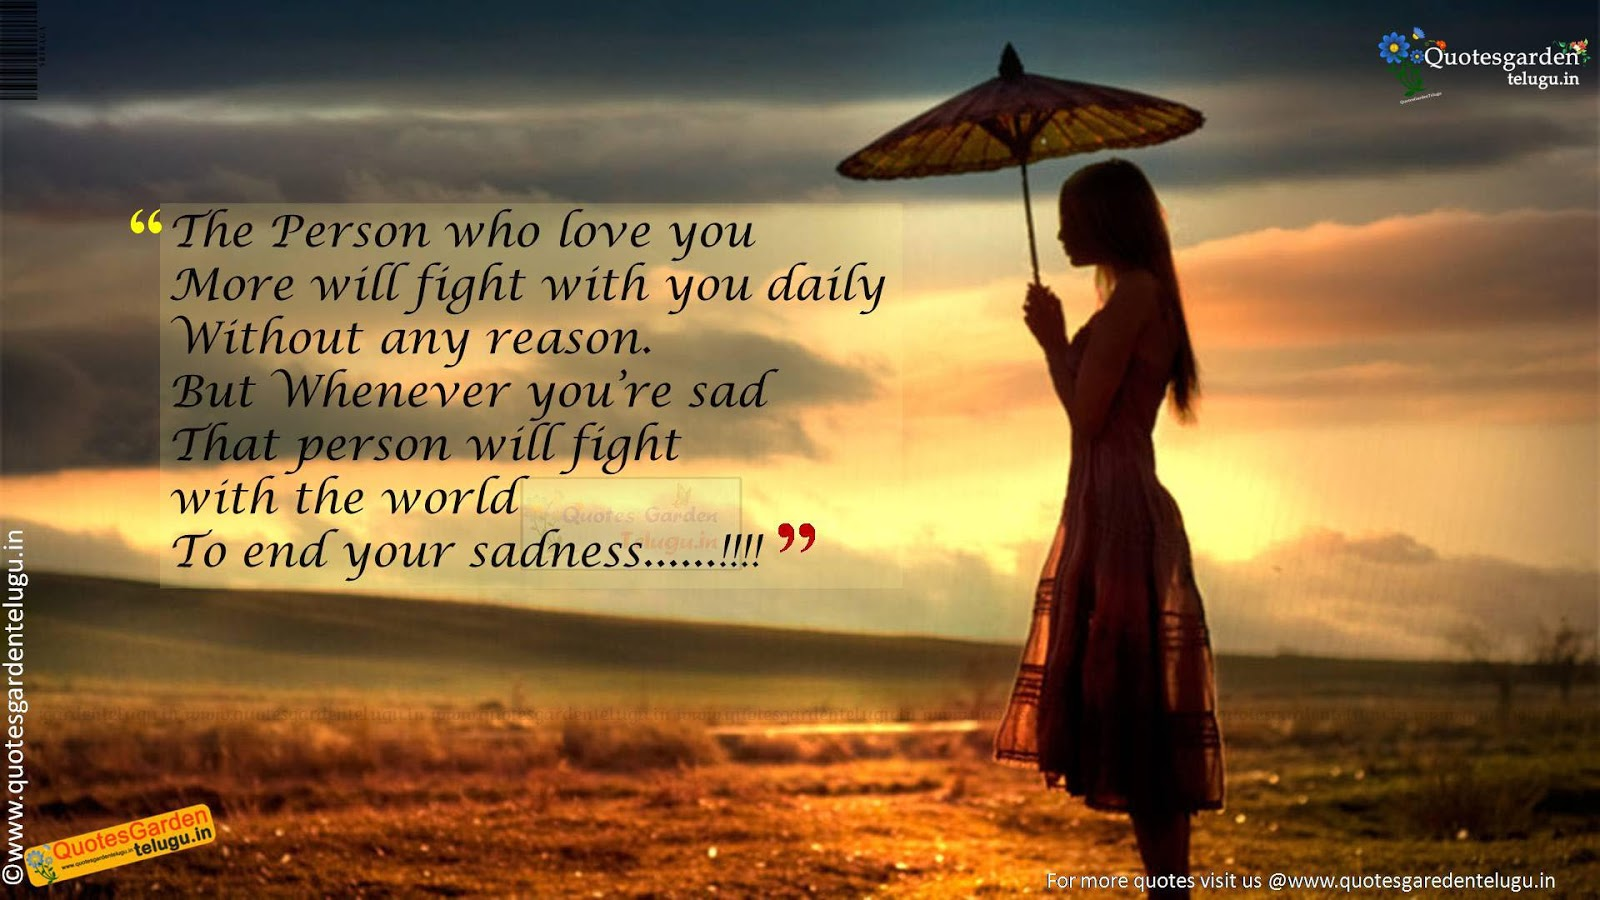 5 quotes beautiful love quotes feel good love quotes love quotes